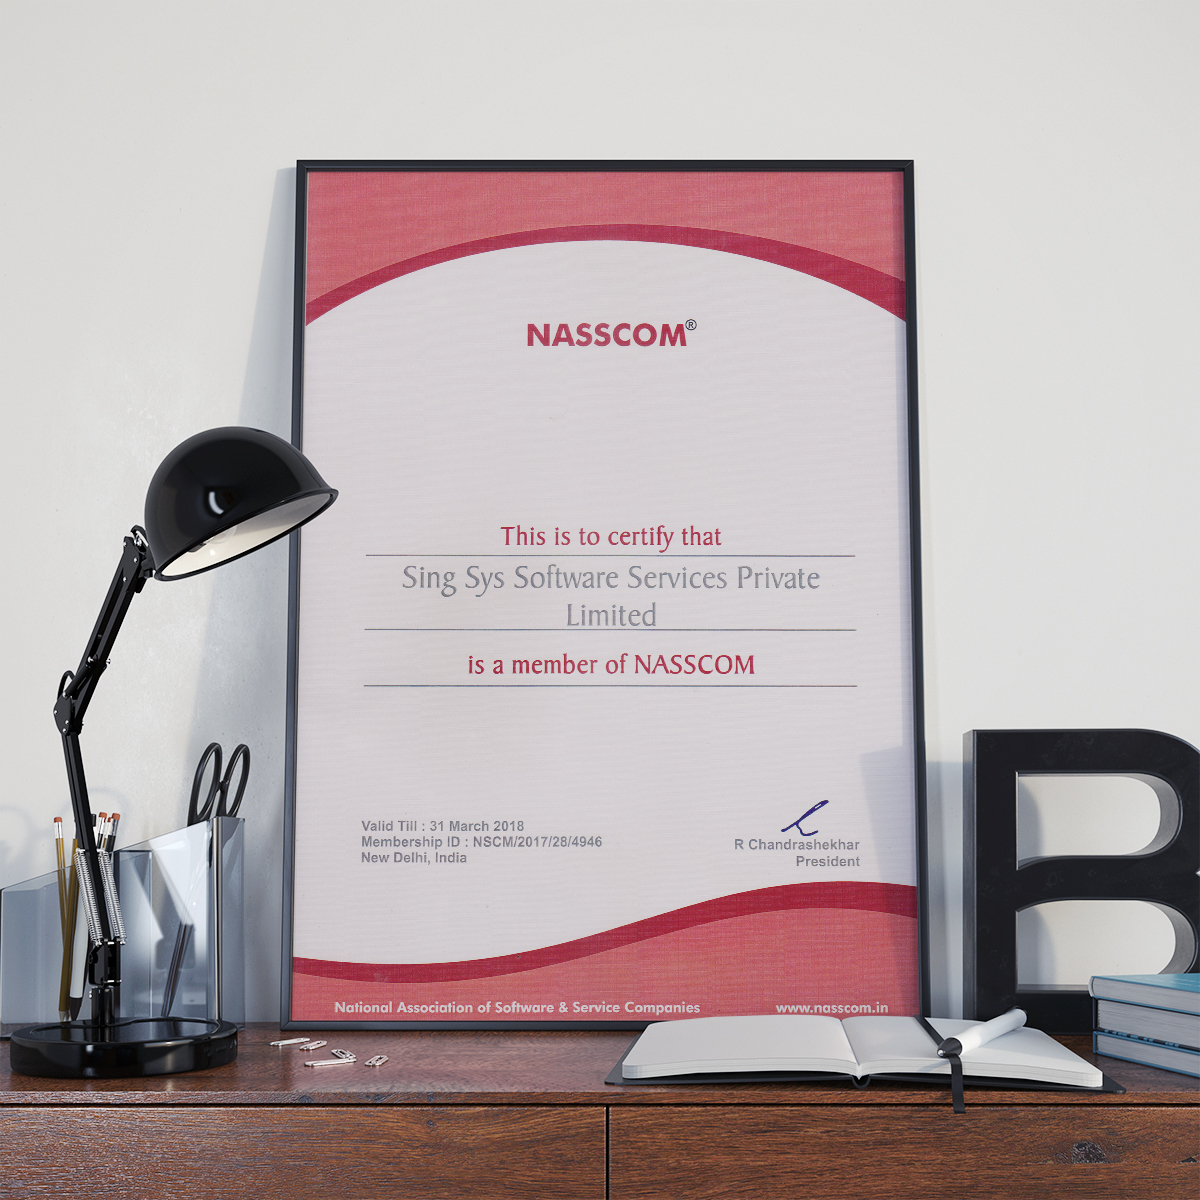 Singsys is proud to be an eminent member of NASSCOM